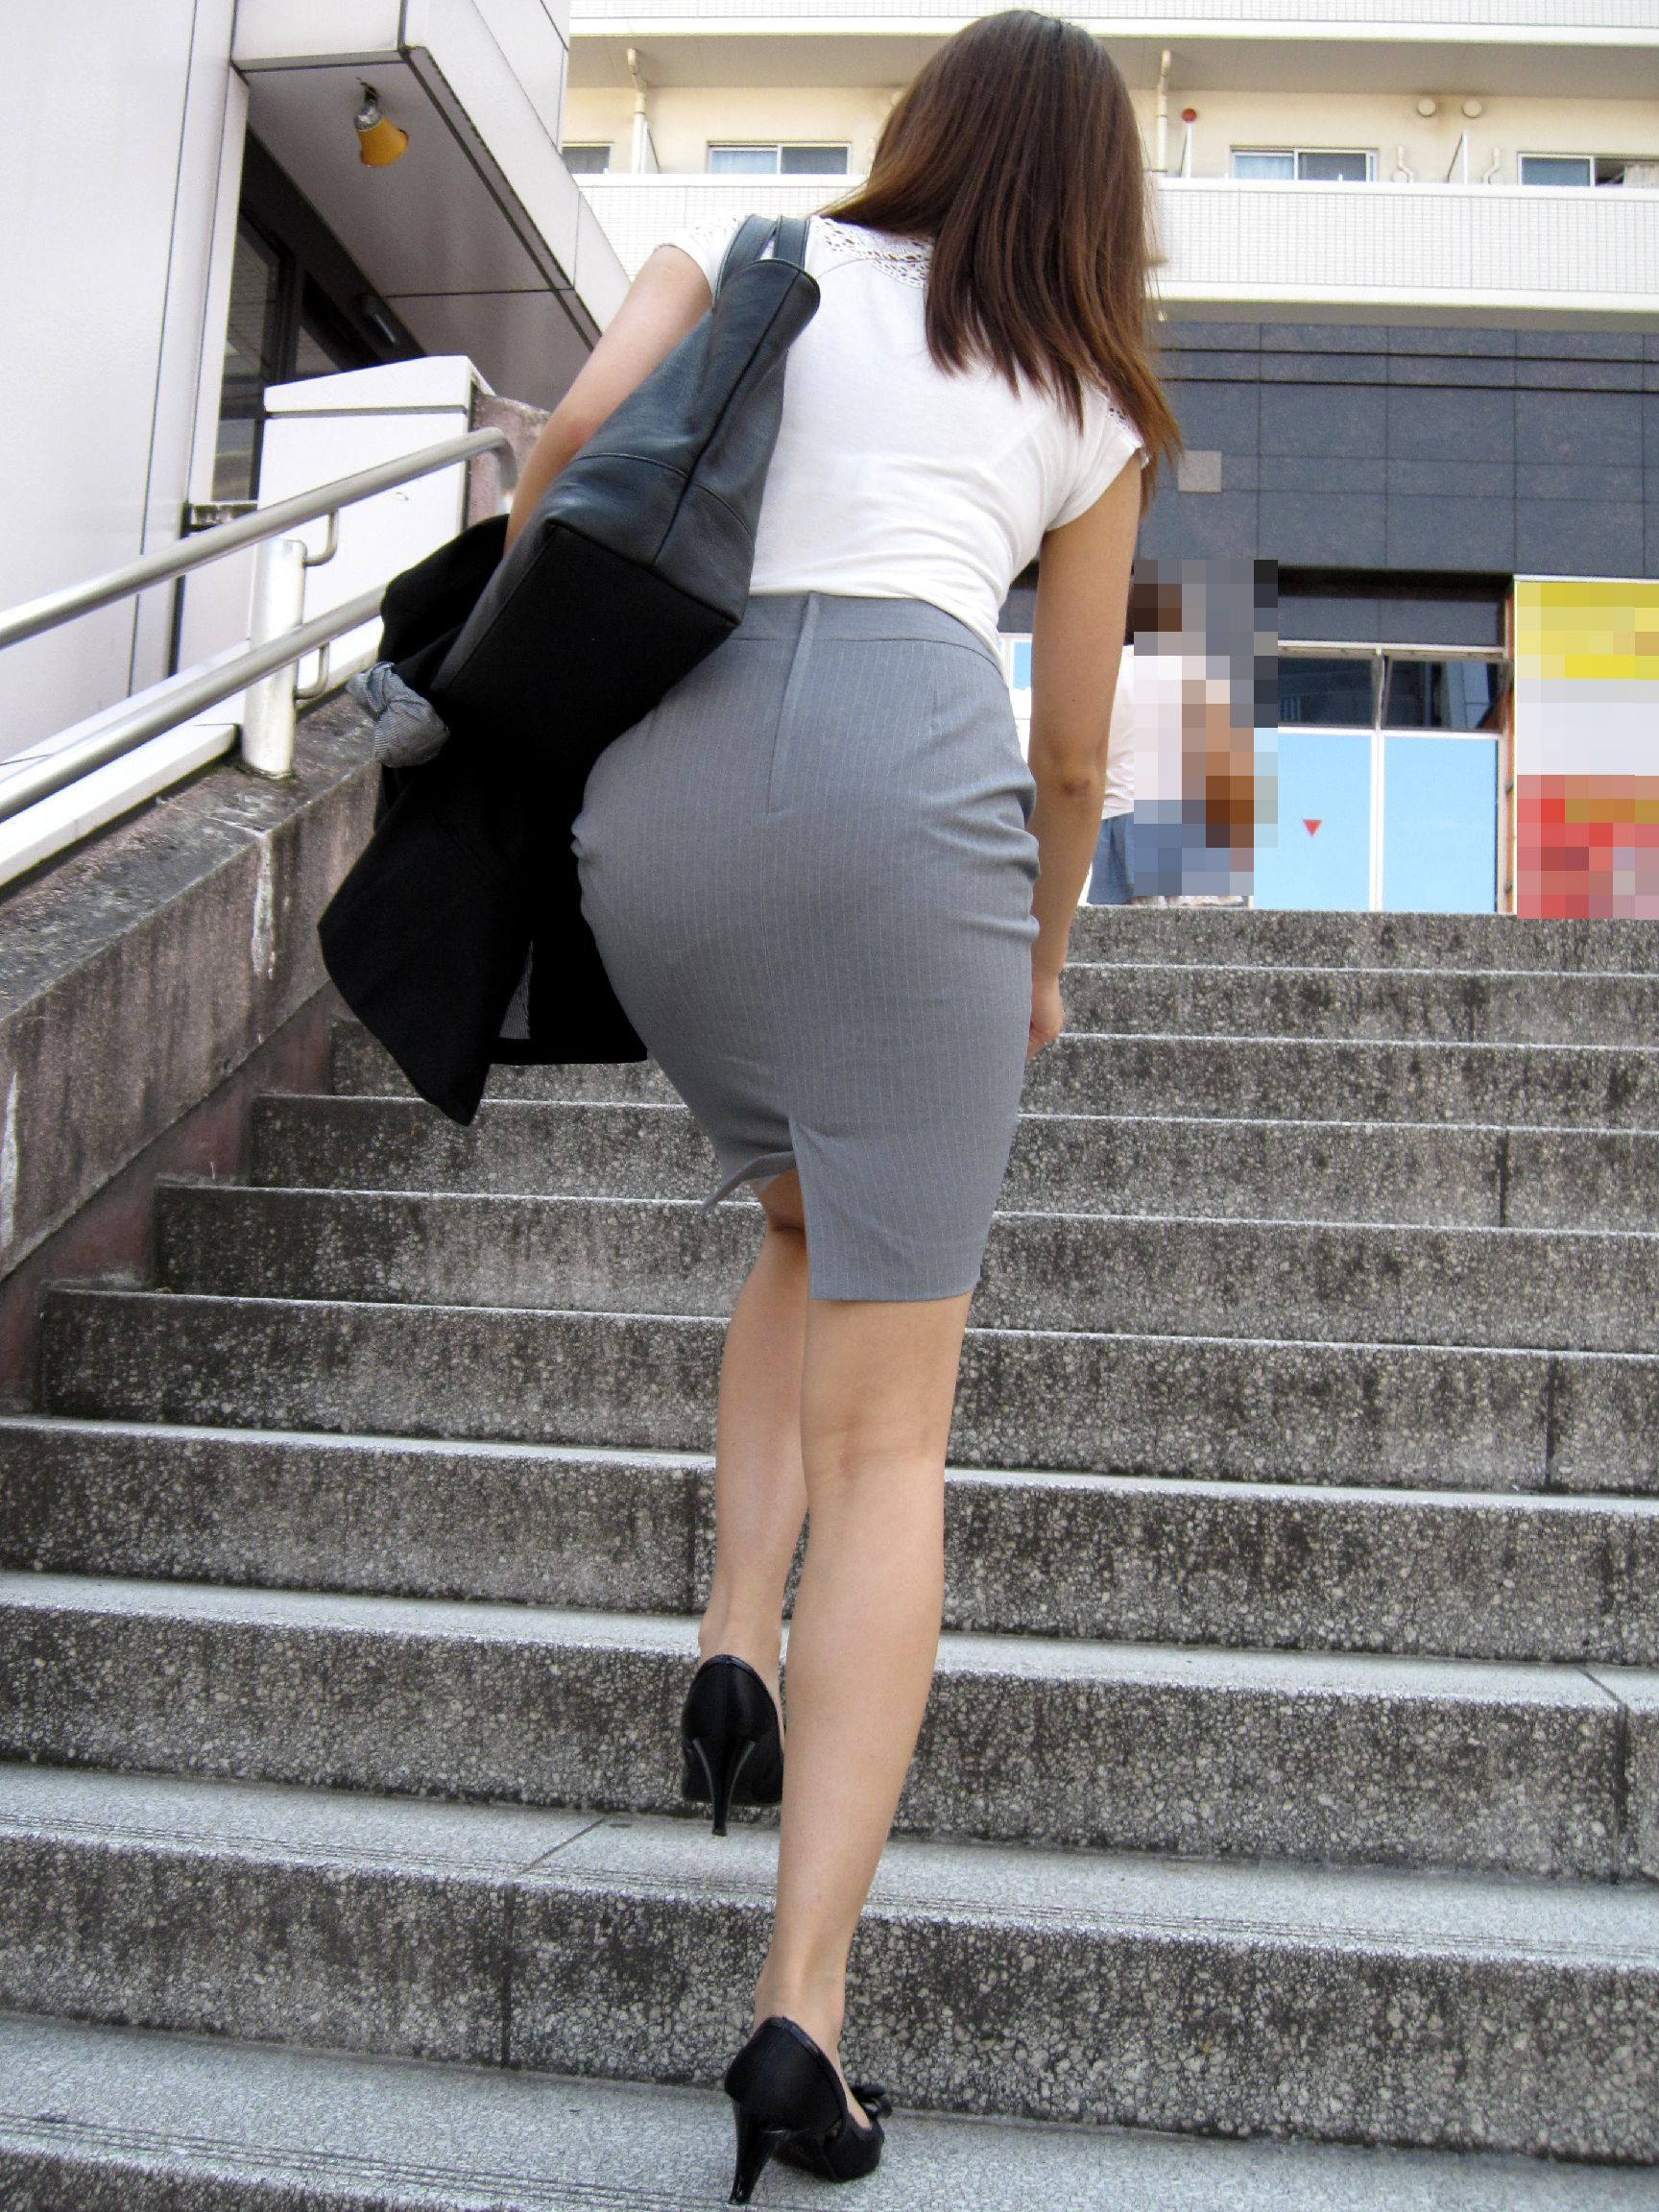 ass-in-miniskirts-sexy-cute-girl-perfect-ass